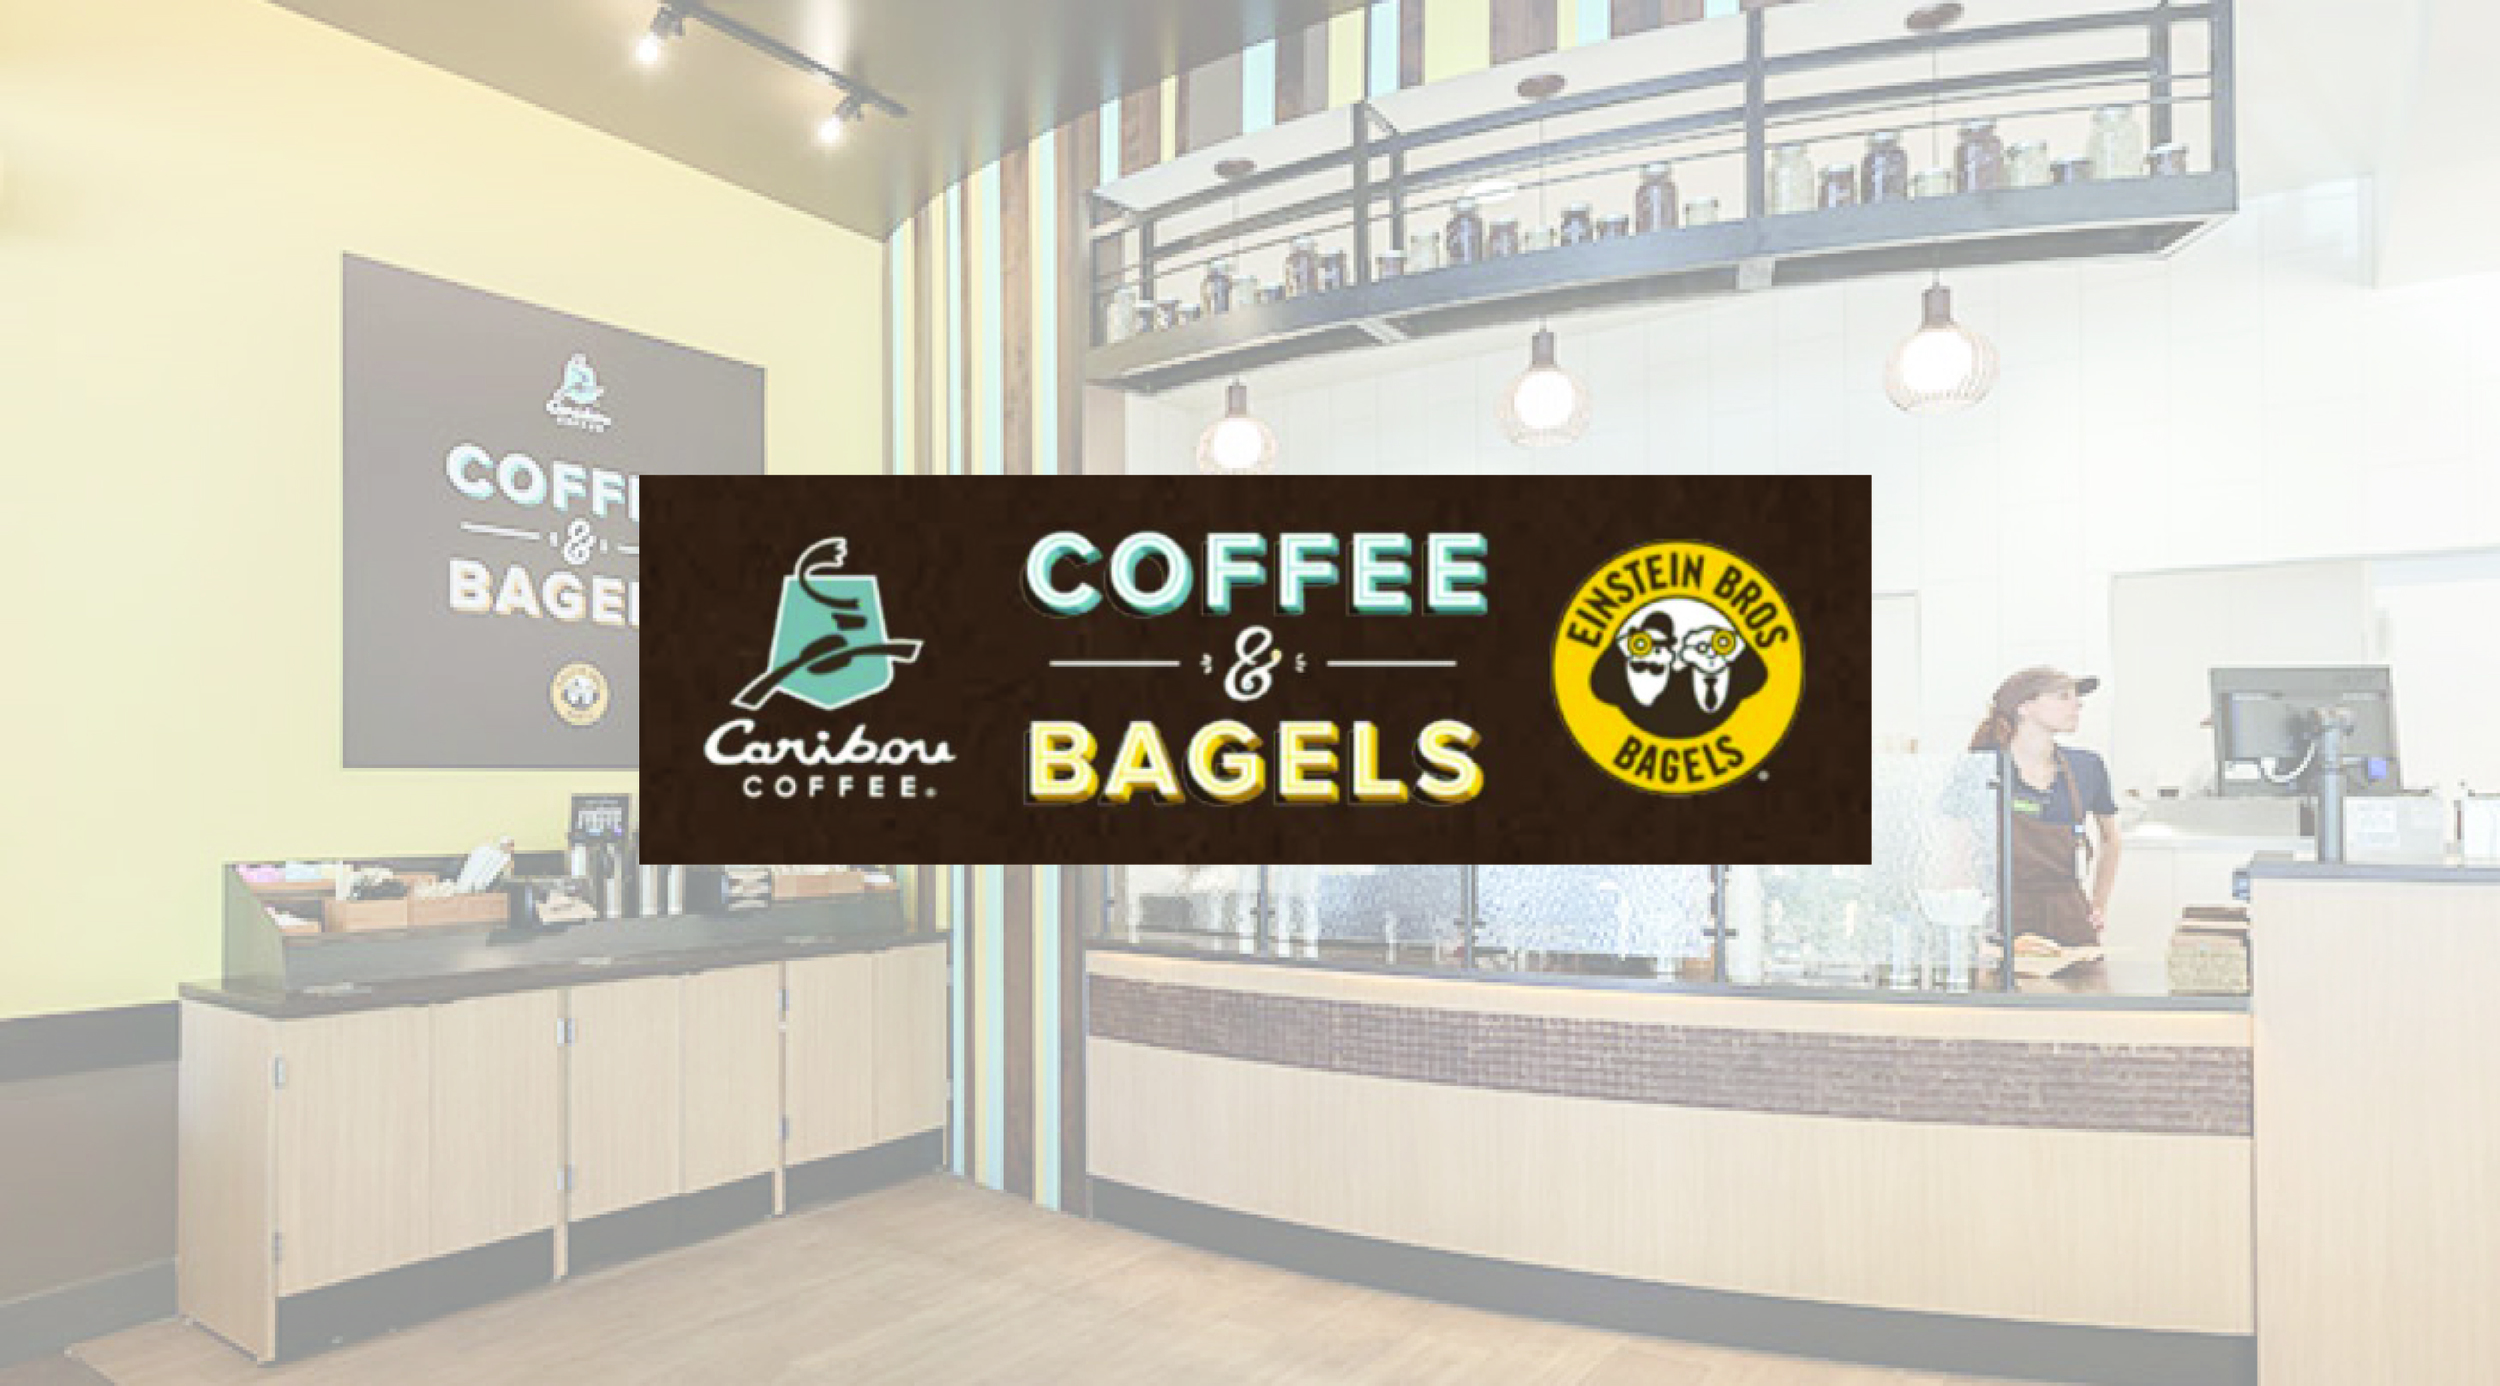 CARIBOU COFFEE & EINSTEIN BROTHERS BAGELS                                                    COMMERCIAL   2120 LONDON ROAD   DULUTH                                                           PLANNED COMPLETION: FALL 2016